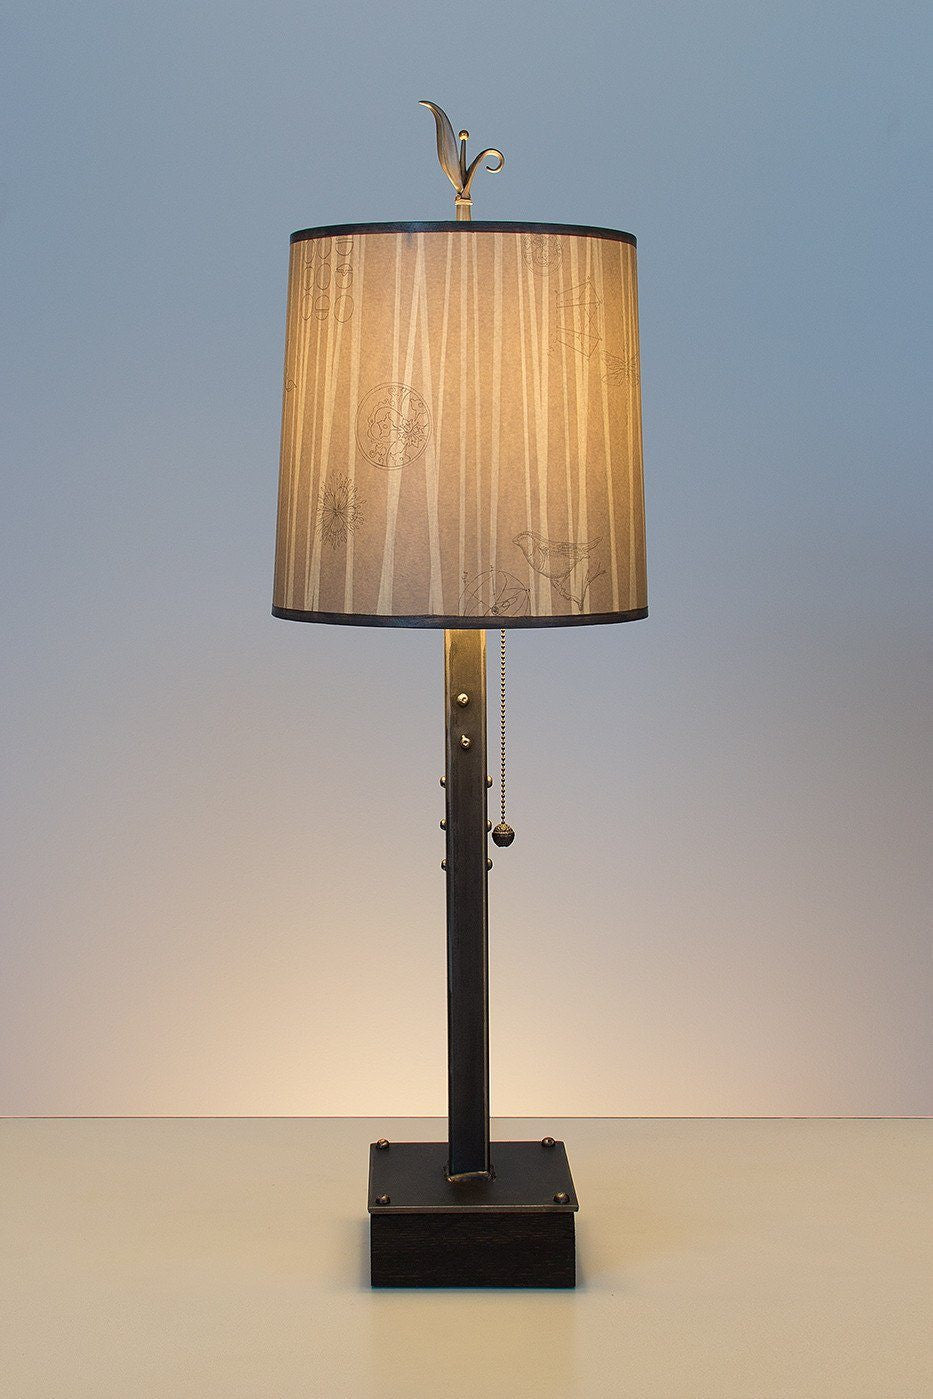 Steel Table Lamp on Wood with Medium Drum Shade in Birch